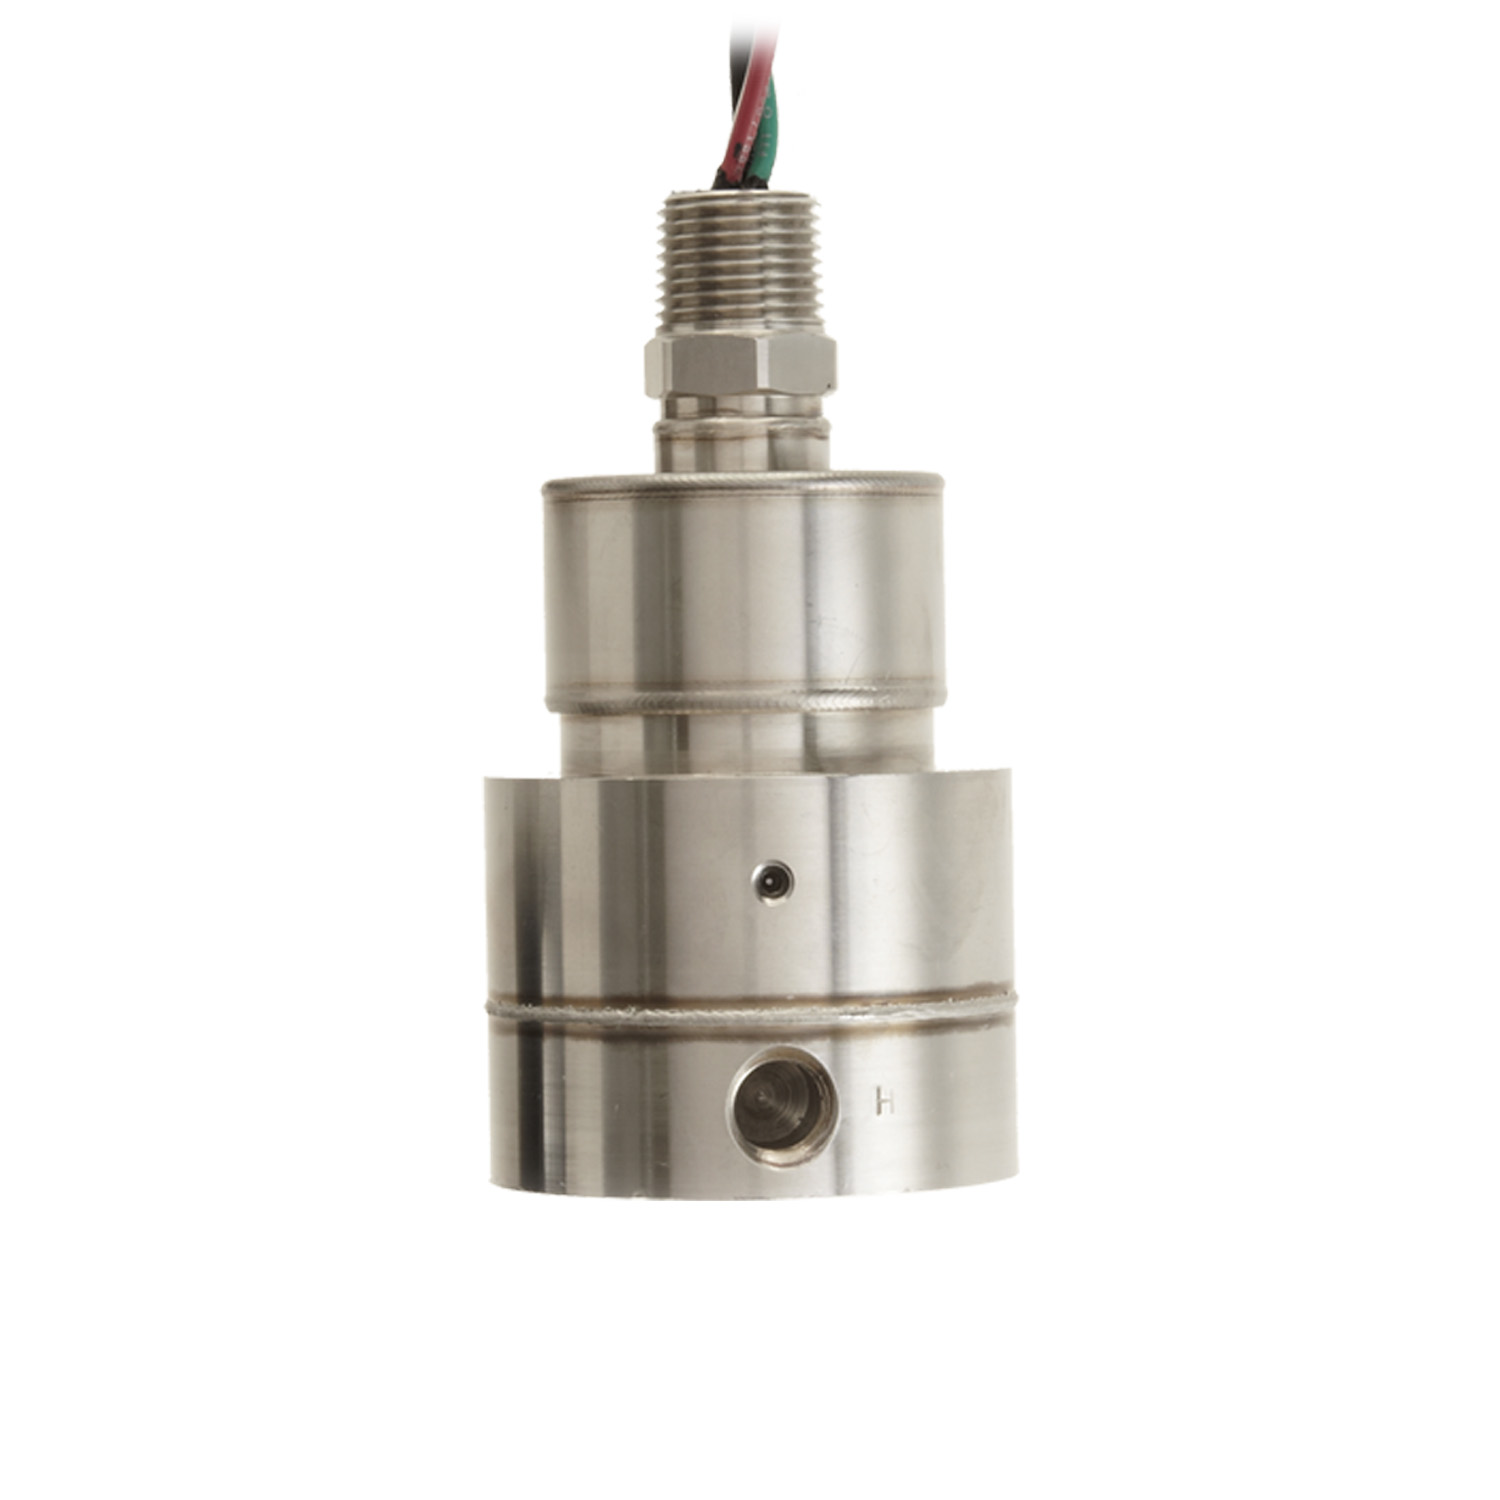 AST5300 series differential pressure transducer